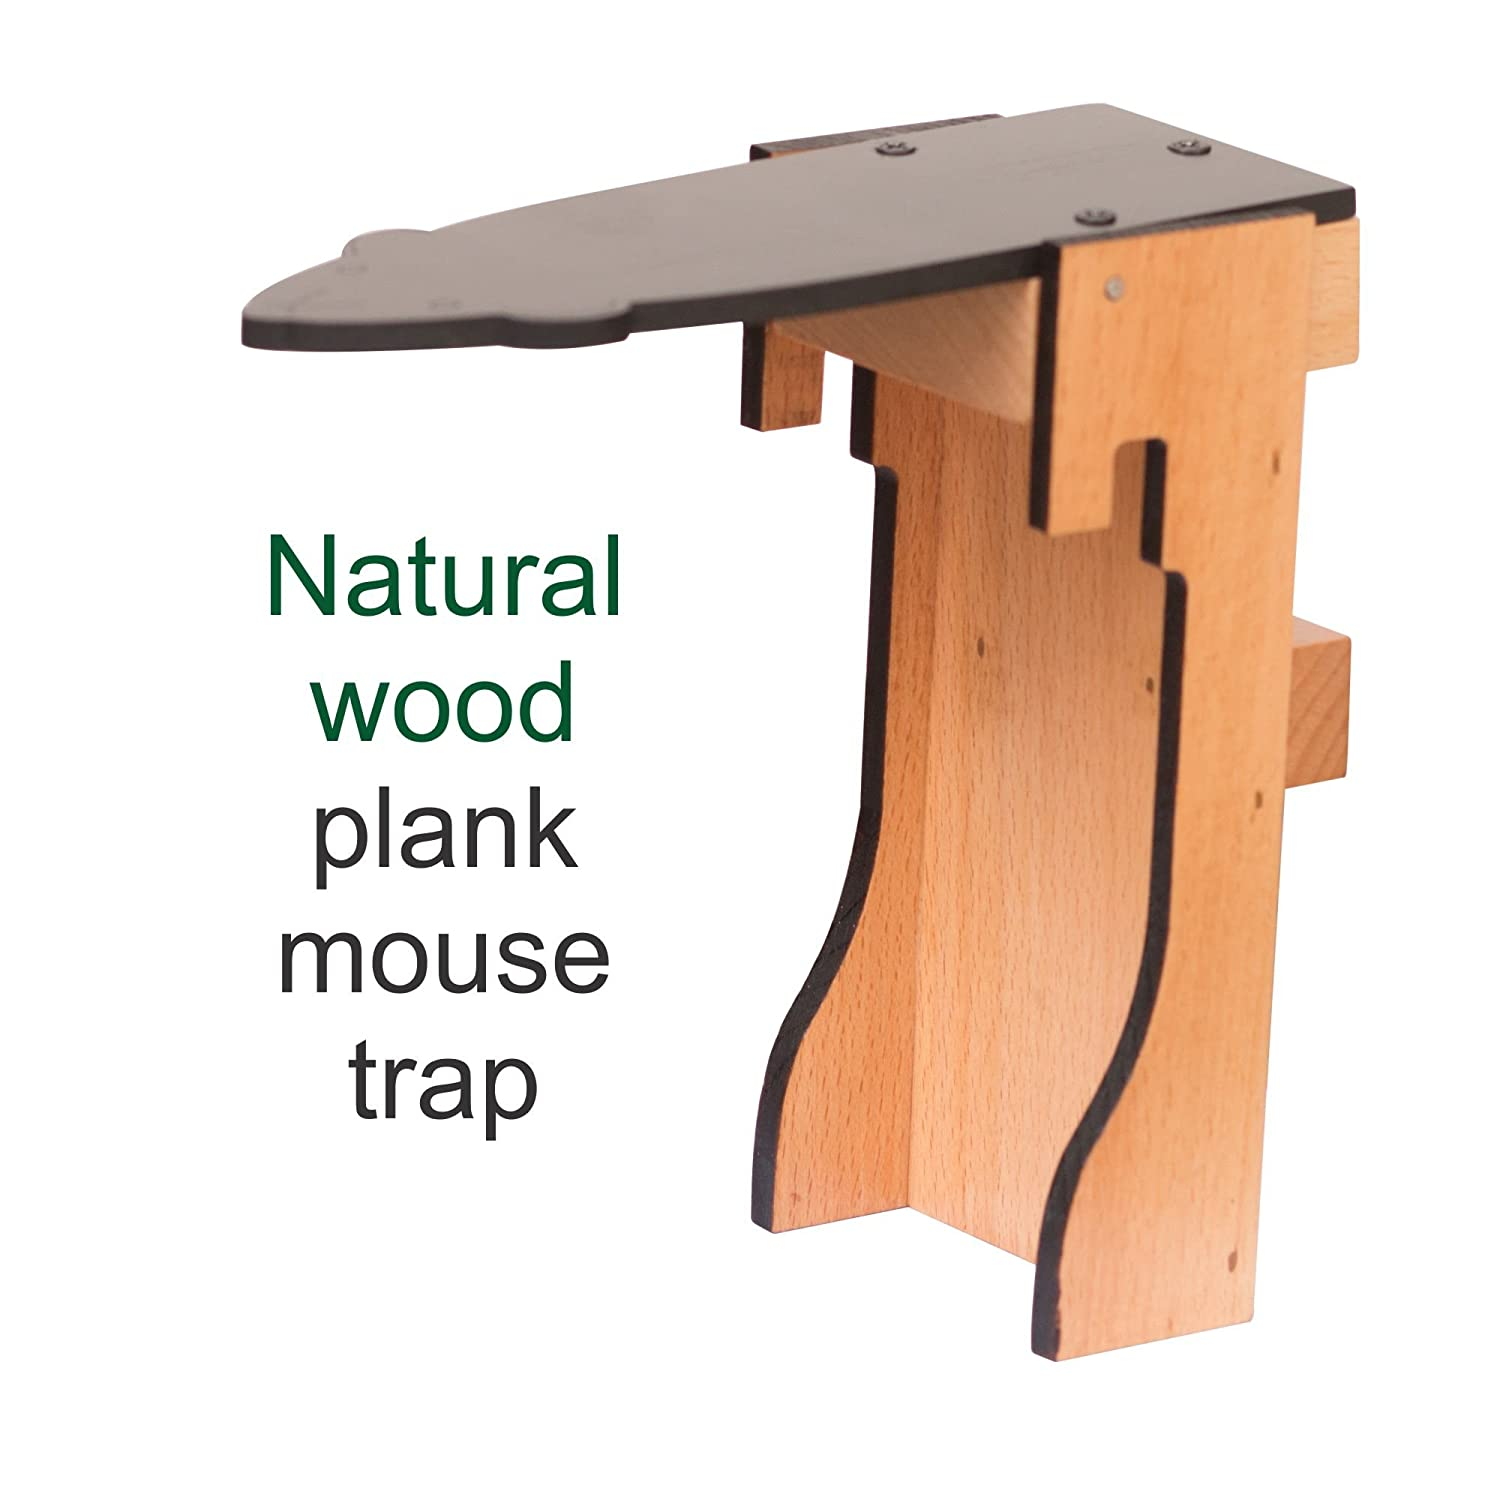 A History of Nhatvywood Plank Mouse Trap Refuted